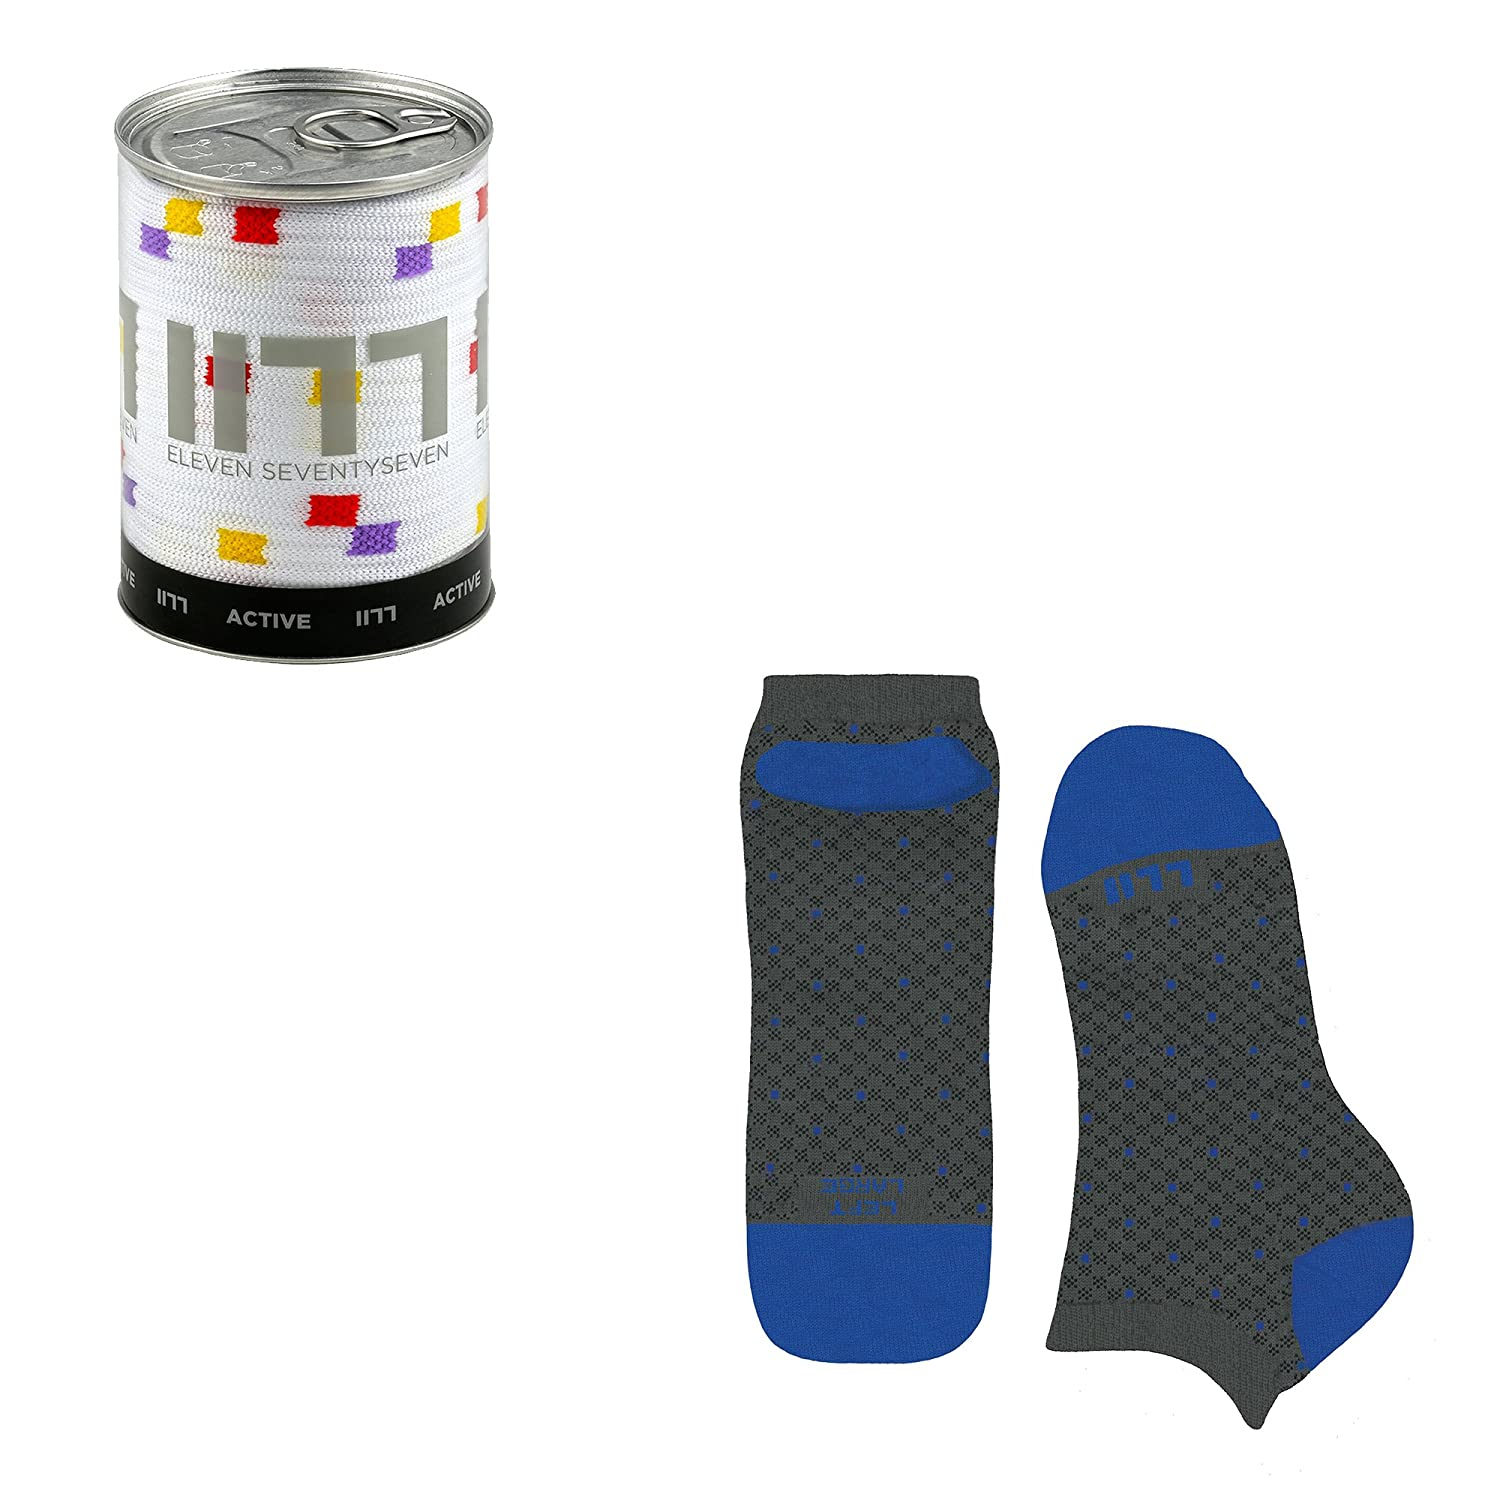 322405eba13 Chaussettes basses invisibles unisex in Dryarn